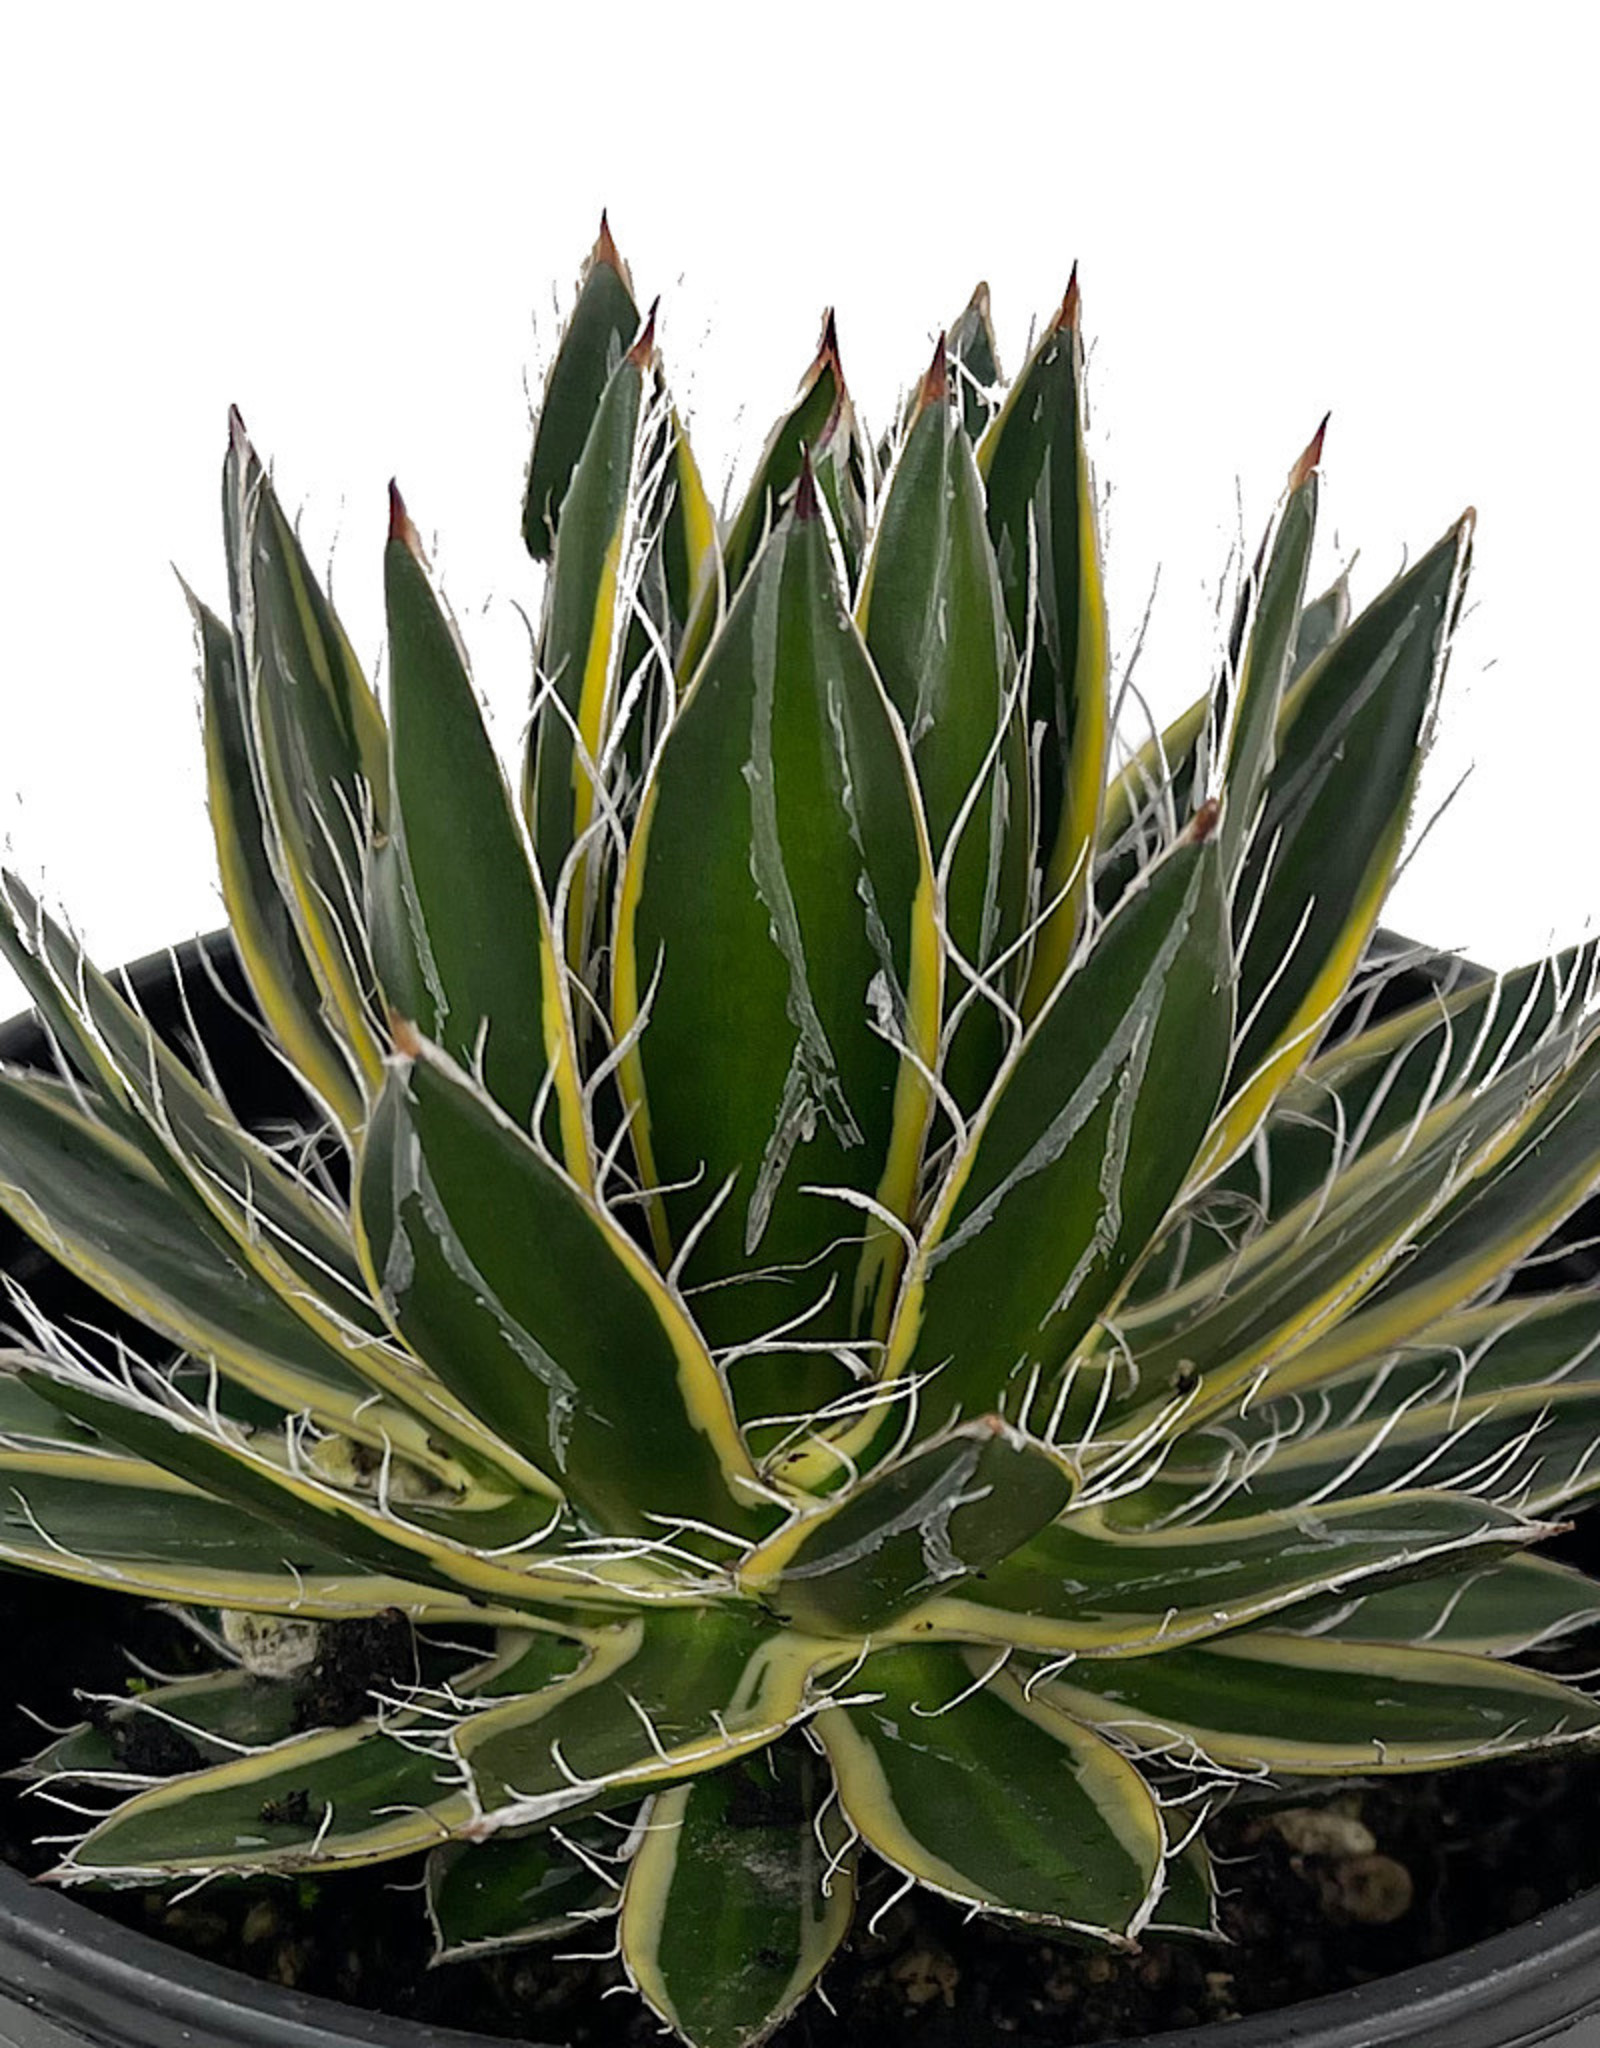 Agave schidigira 'Shira-Ito-No-Ohi' 1 Gallon